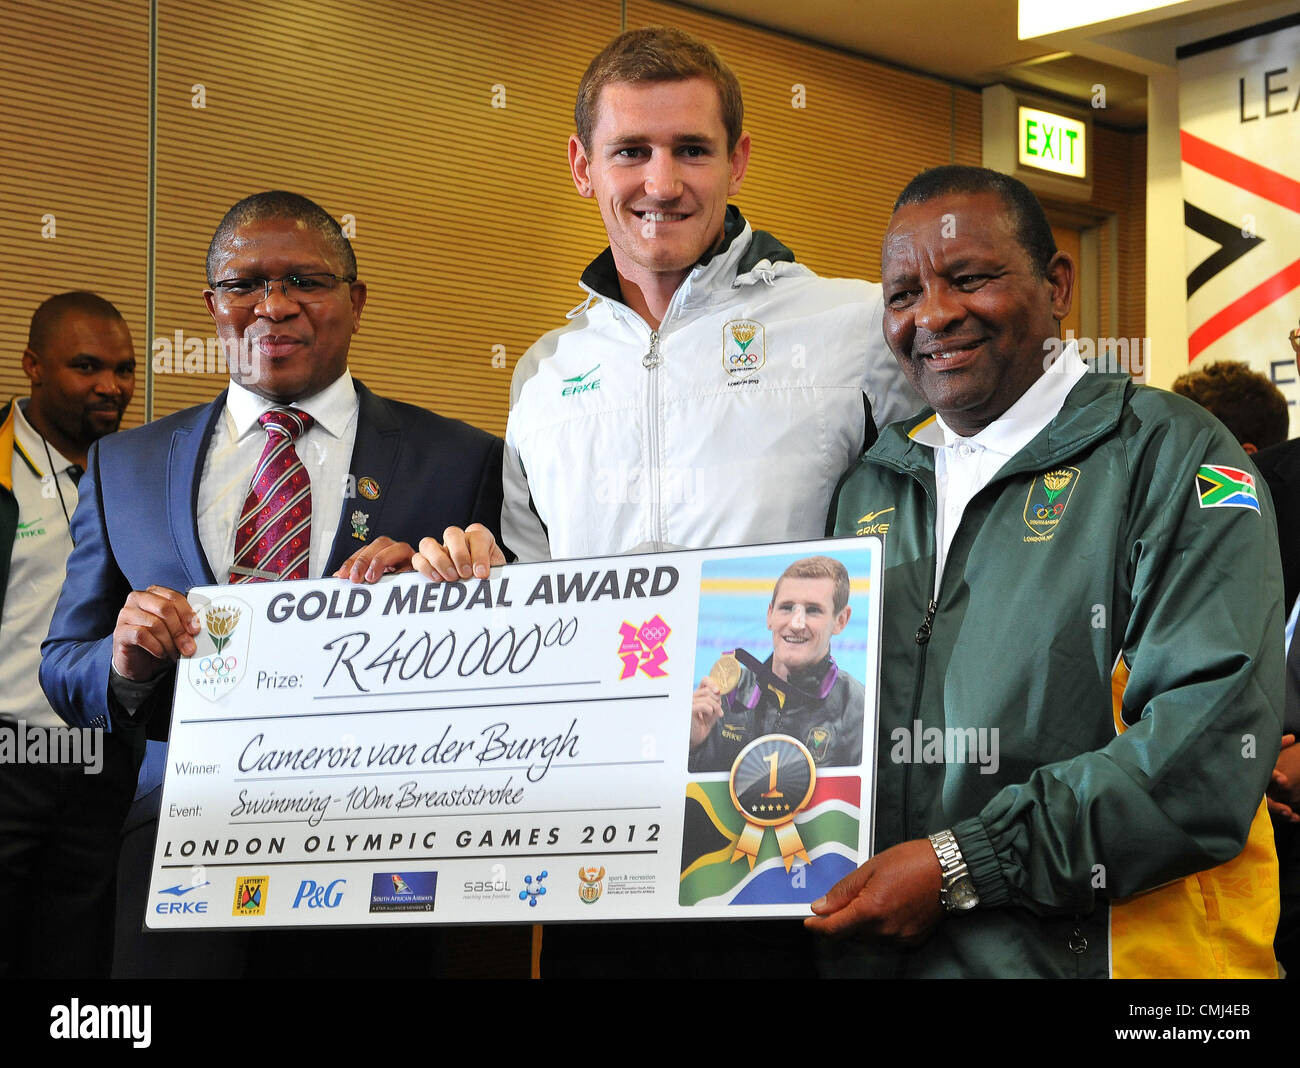 14th Aug 2012 Johannesburg, South Africa. Cameron van der Burgh with Fikile Mlalula and Gideon Sam during the South - Stock Image